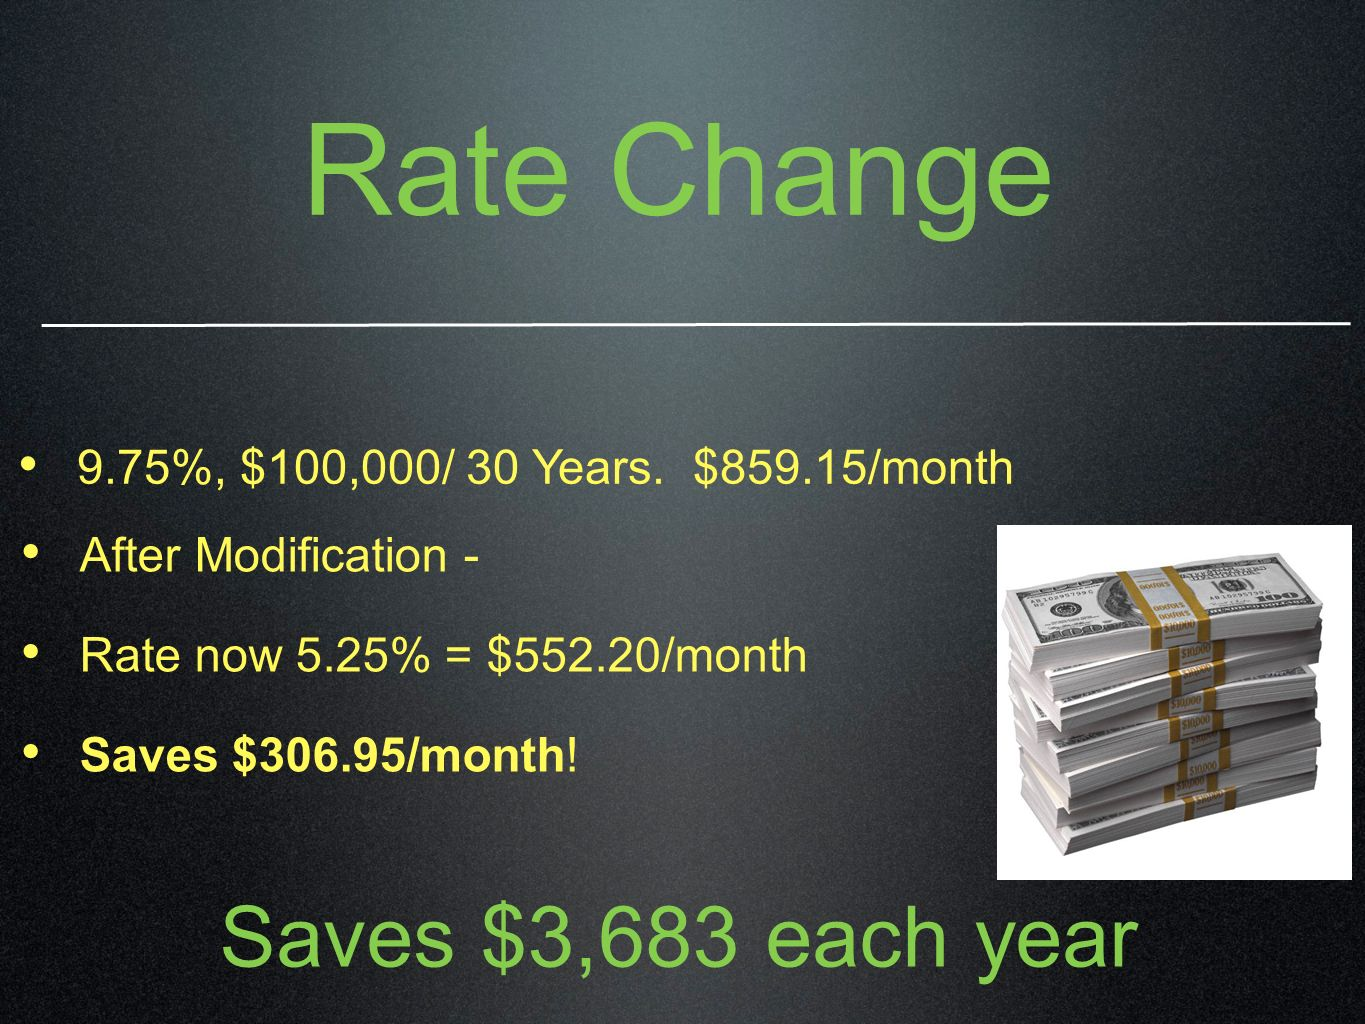 Rate Change After Modification - Rate now 5.25% = $552.20/month Saves $306.95/month! 9.75%, $100,000/ 30 Years. $859.15/month Saves $3,683 each year